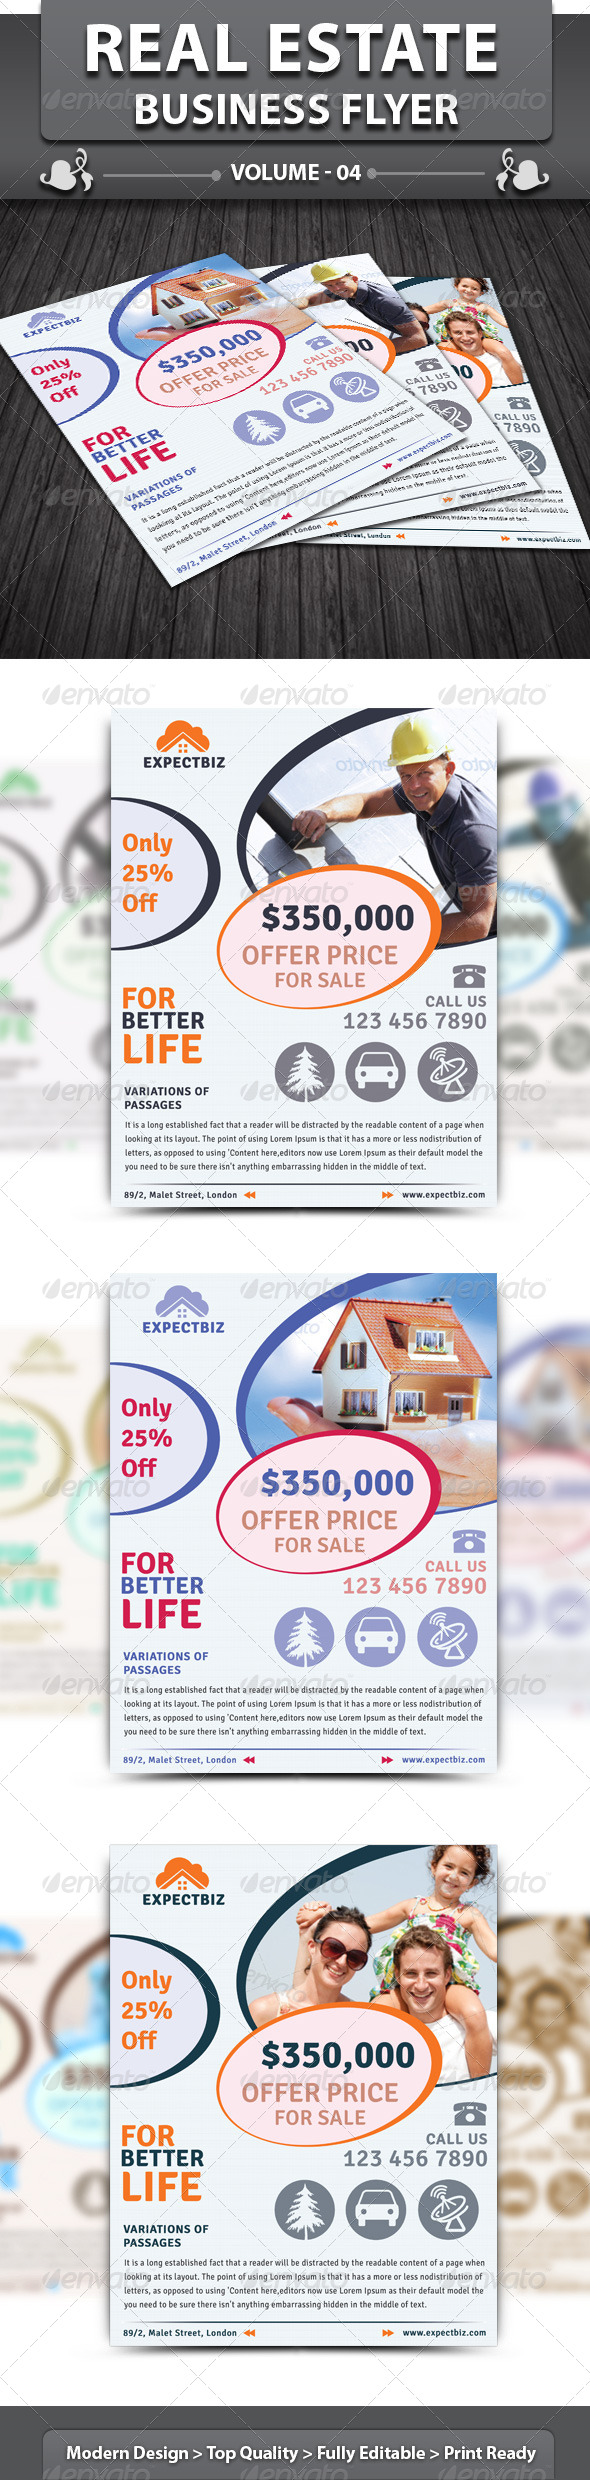 Real Estate Business Flyer | Volume 4 - Corporate Flyers